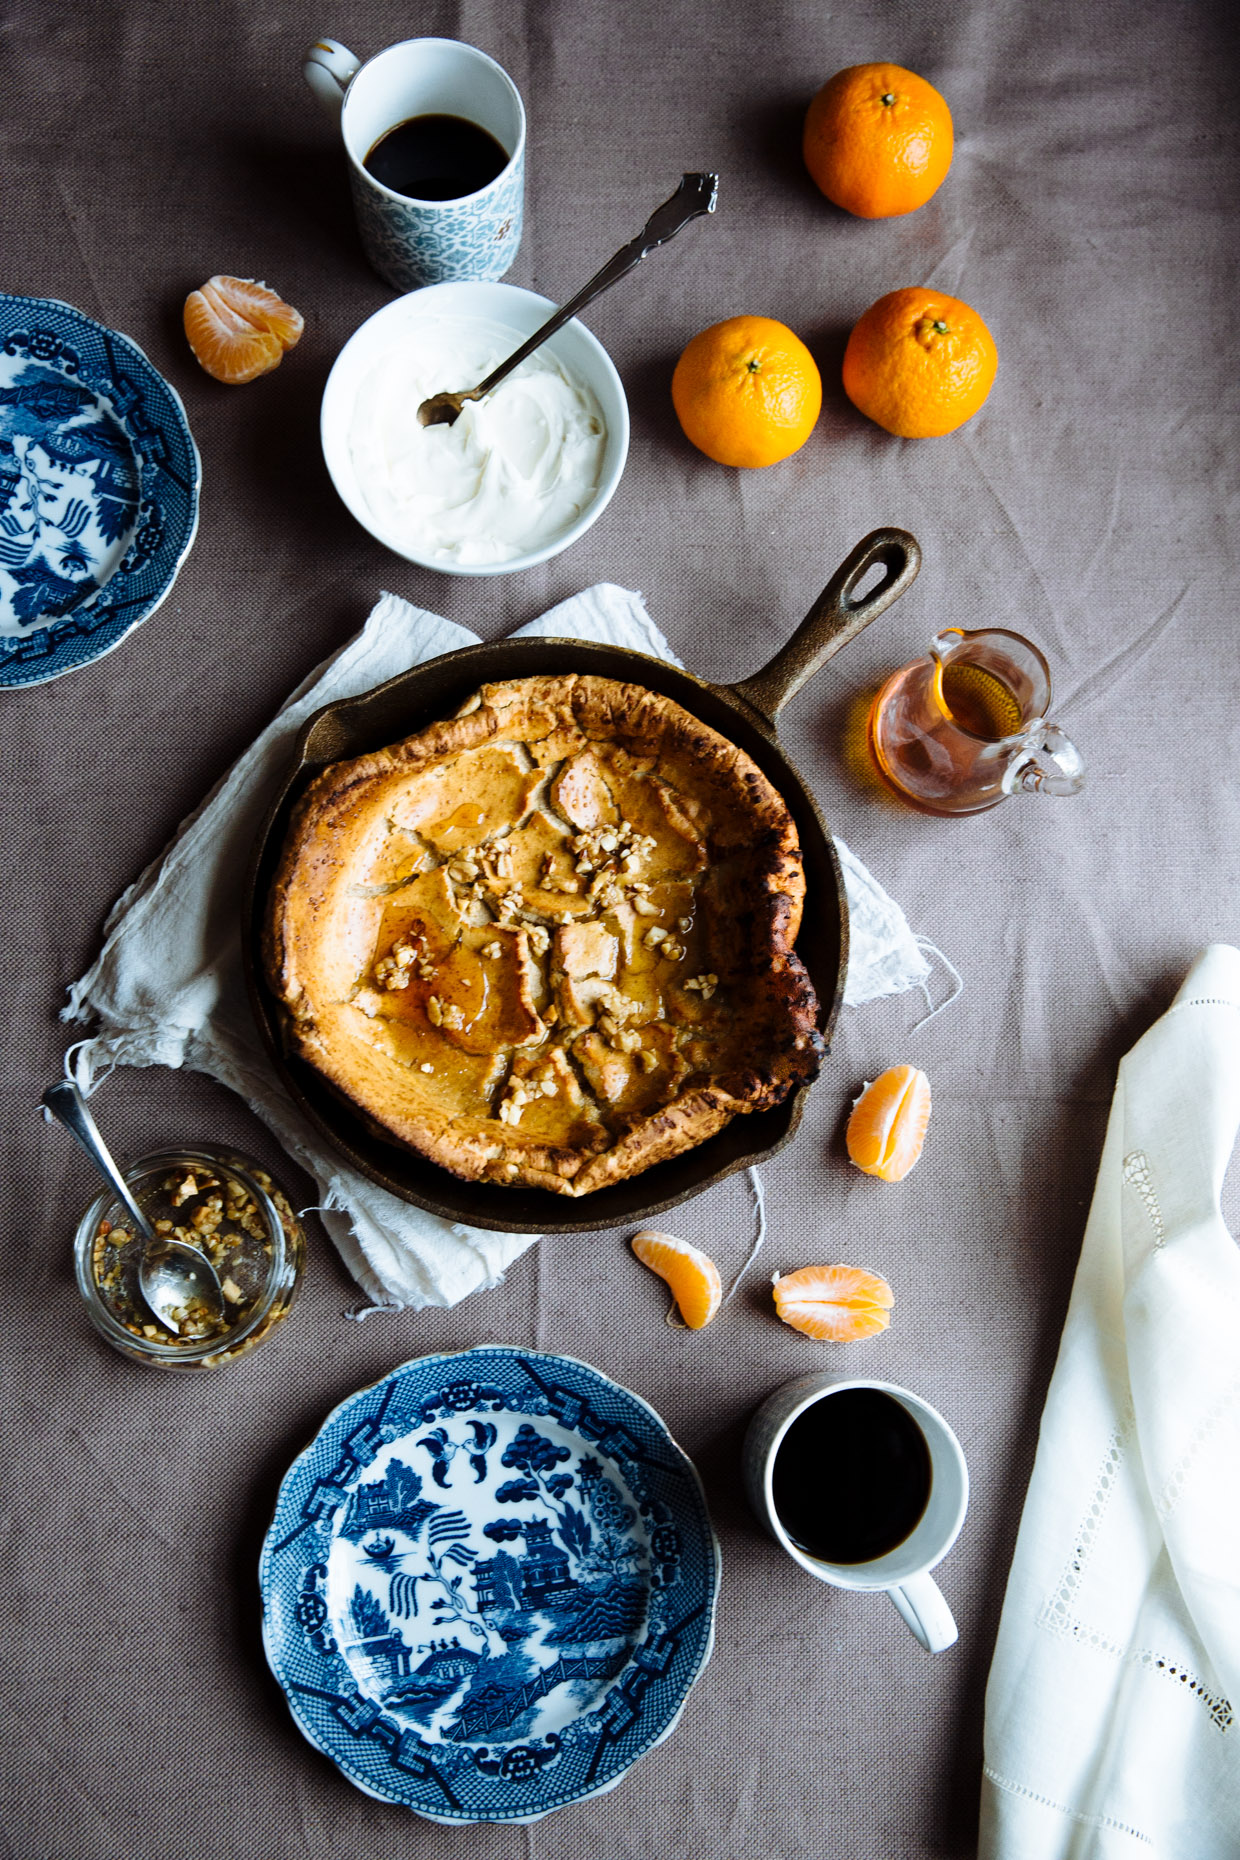 Spicy satsuma & maple Dutch baby